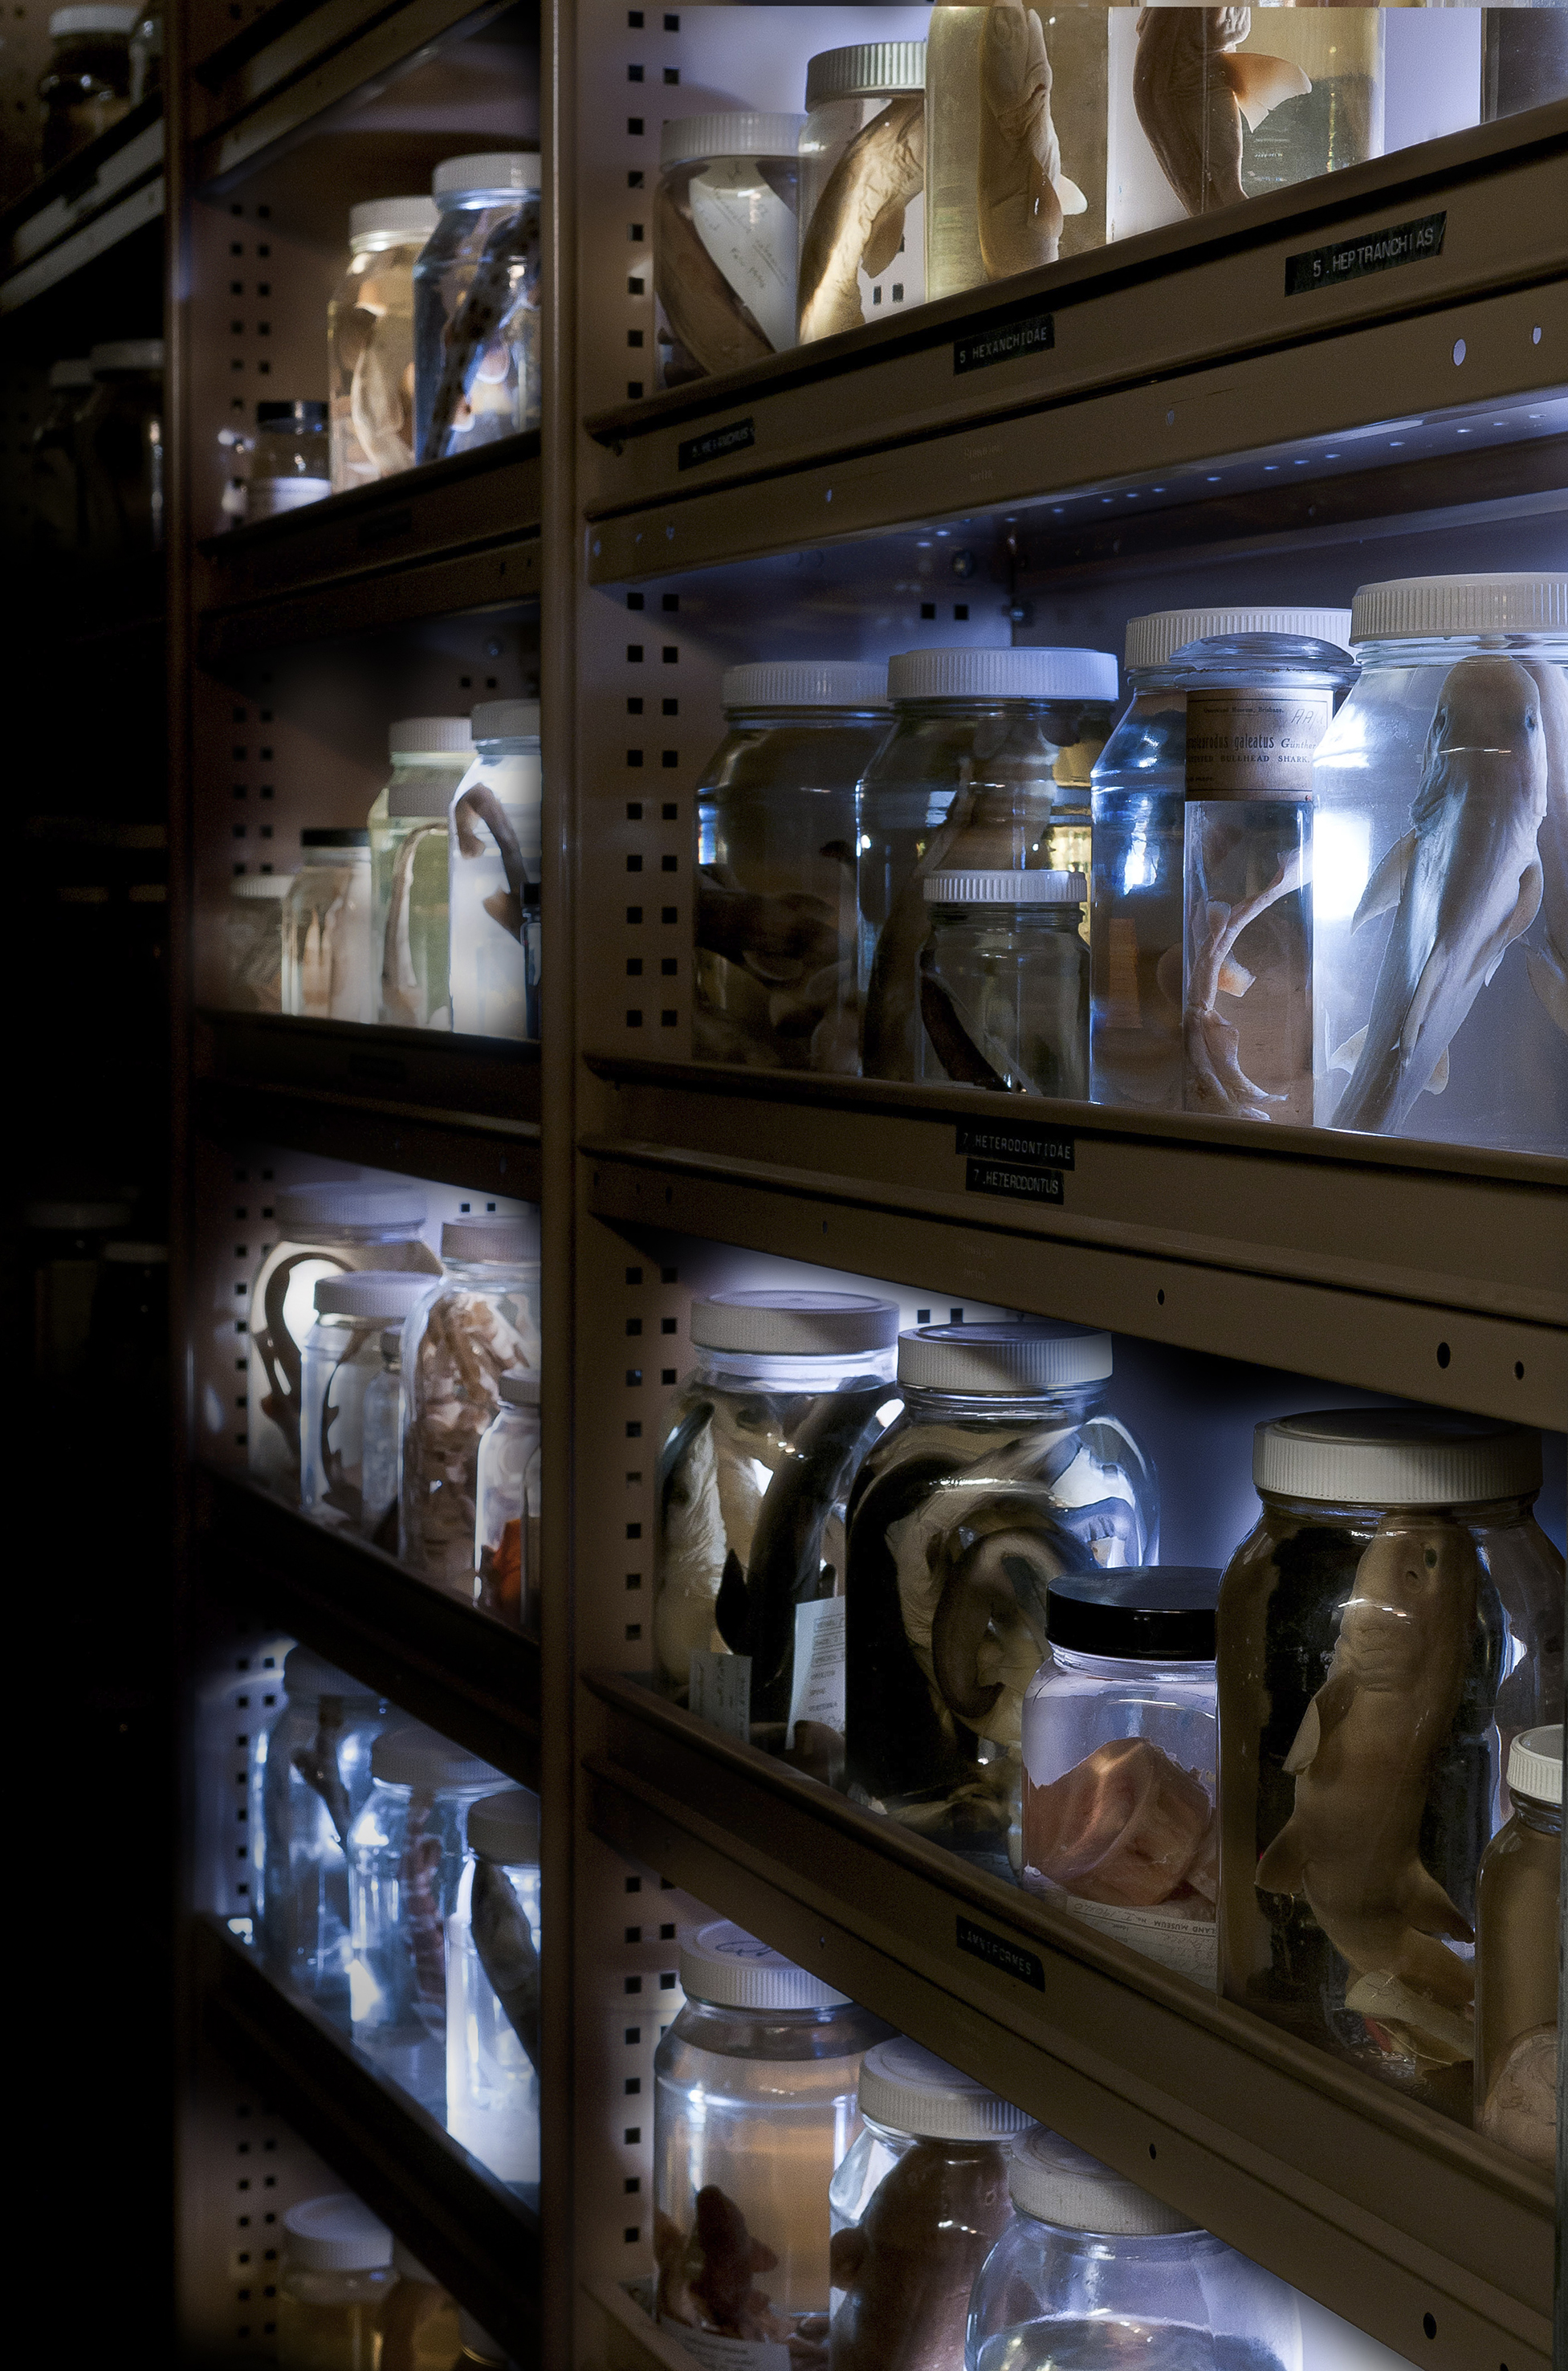 Shelf full of glass specimen jars